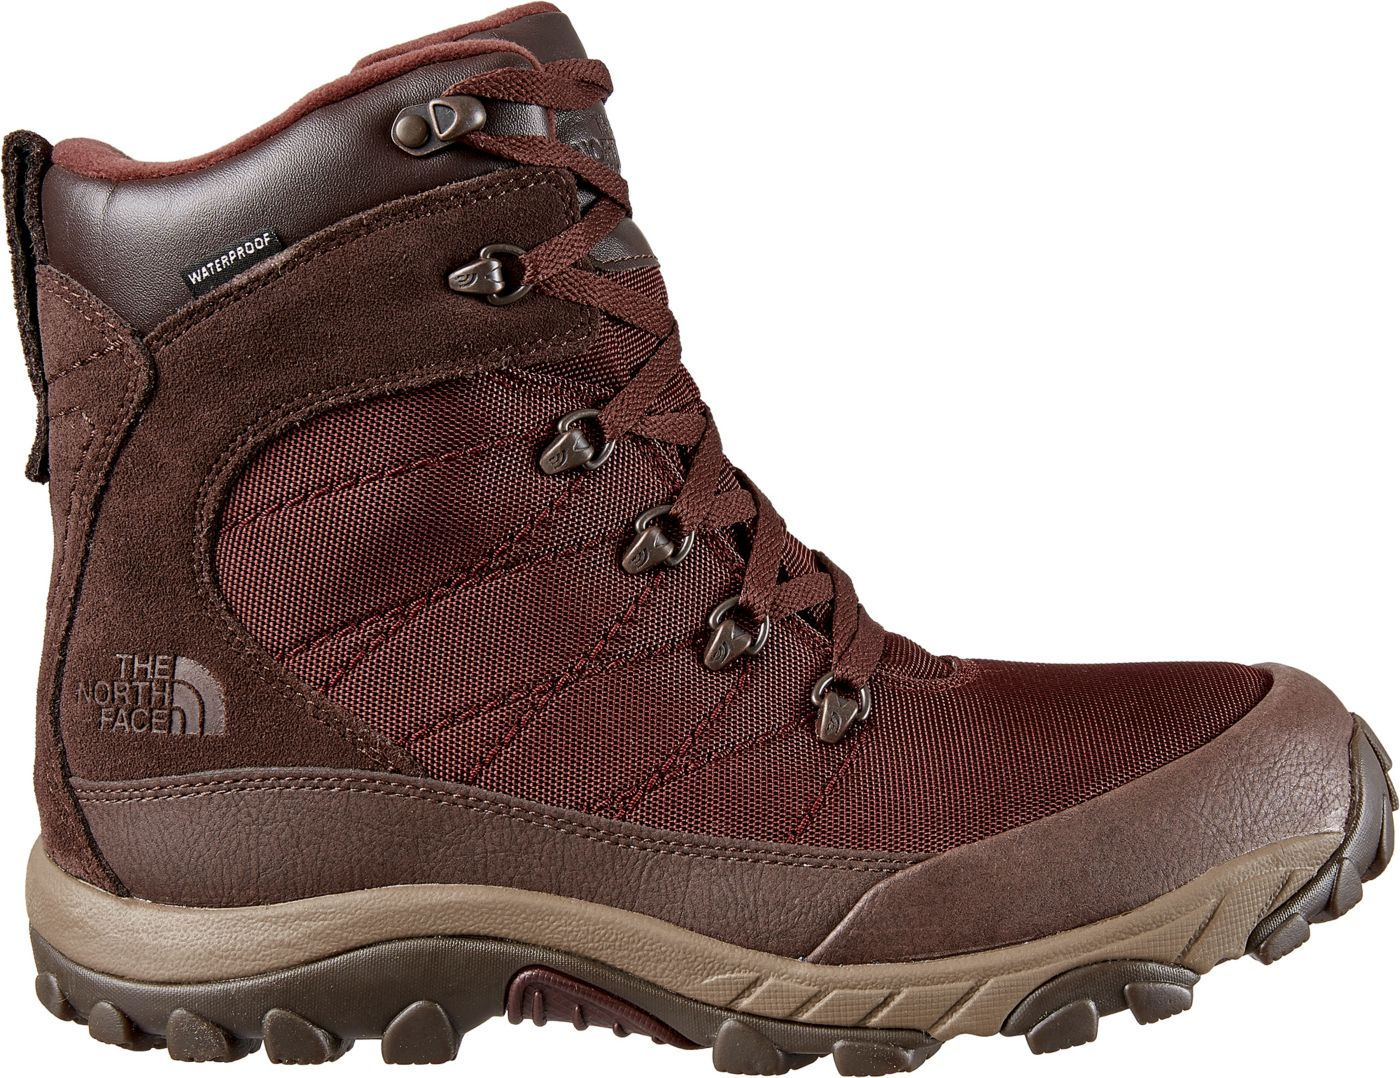 The North Face Men's Chilkat Nylon Waterproof Winter Boots